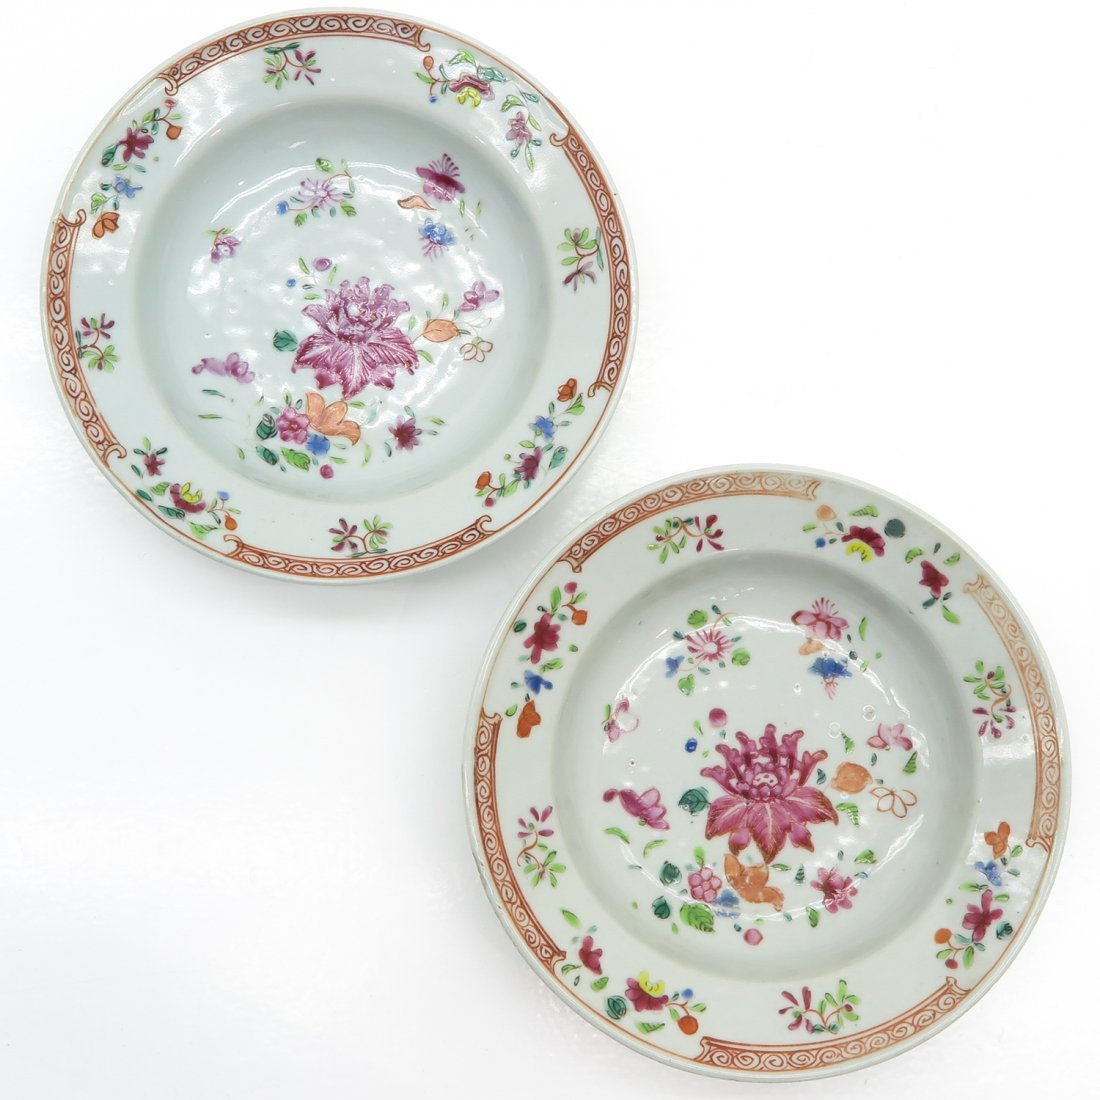 Lot of 2 China Porcelain Famille Rose Plates